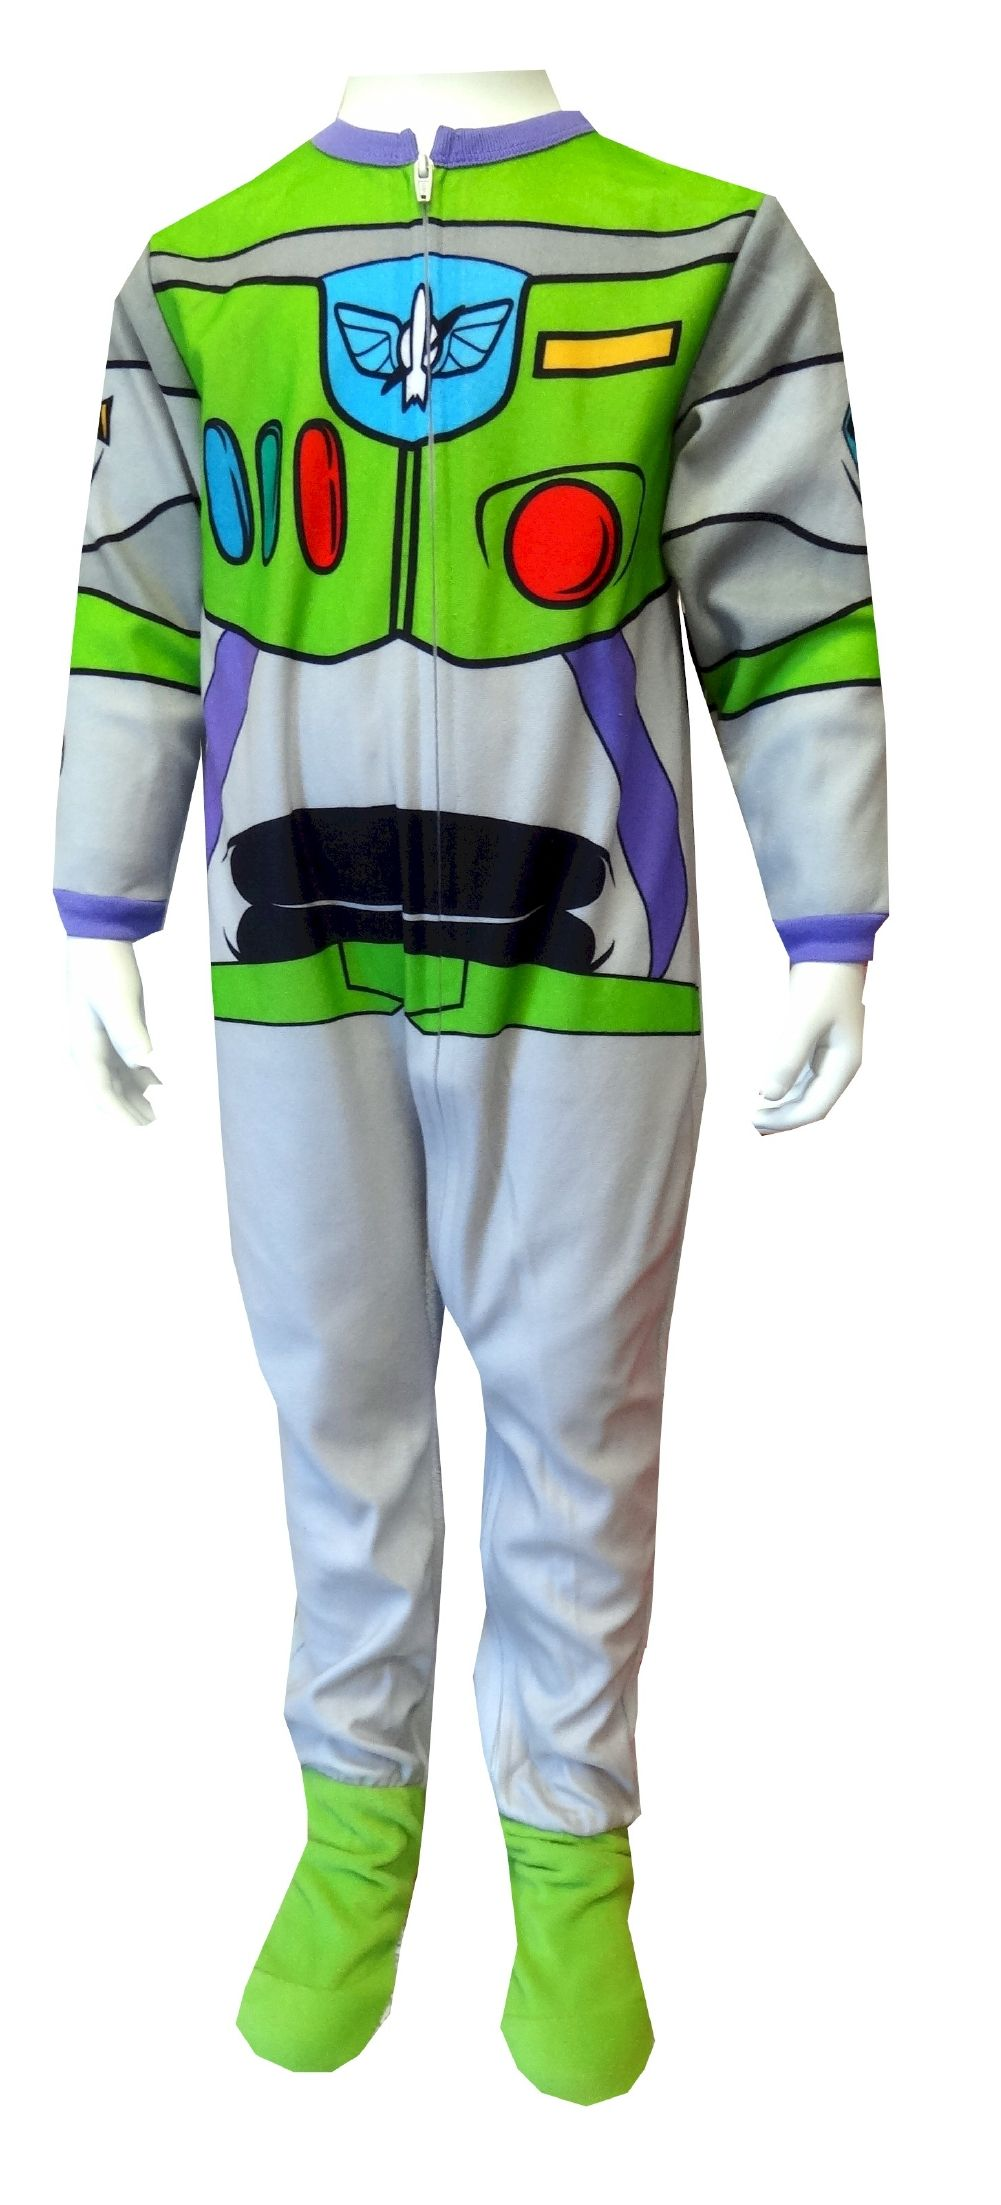 48d02e50a8 Disney Pixar Toy Story Buzz Lightyear Toddler Footie Pajama He ll look and  feel like Buzz in these awesome character pajamas! This flame resistant  blanket ...